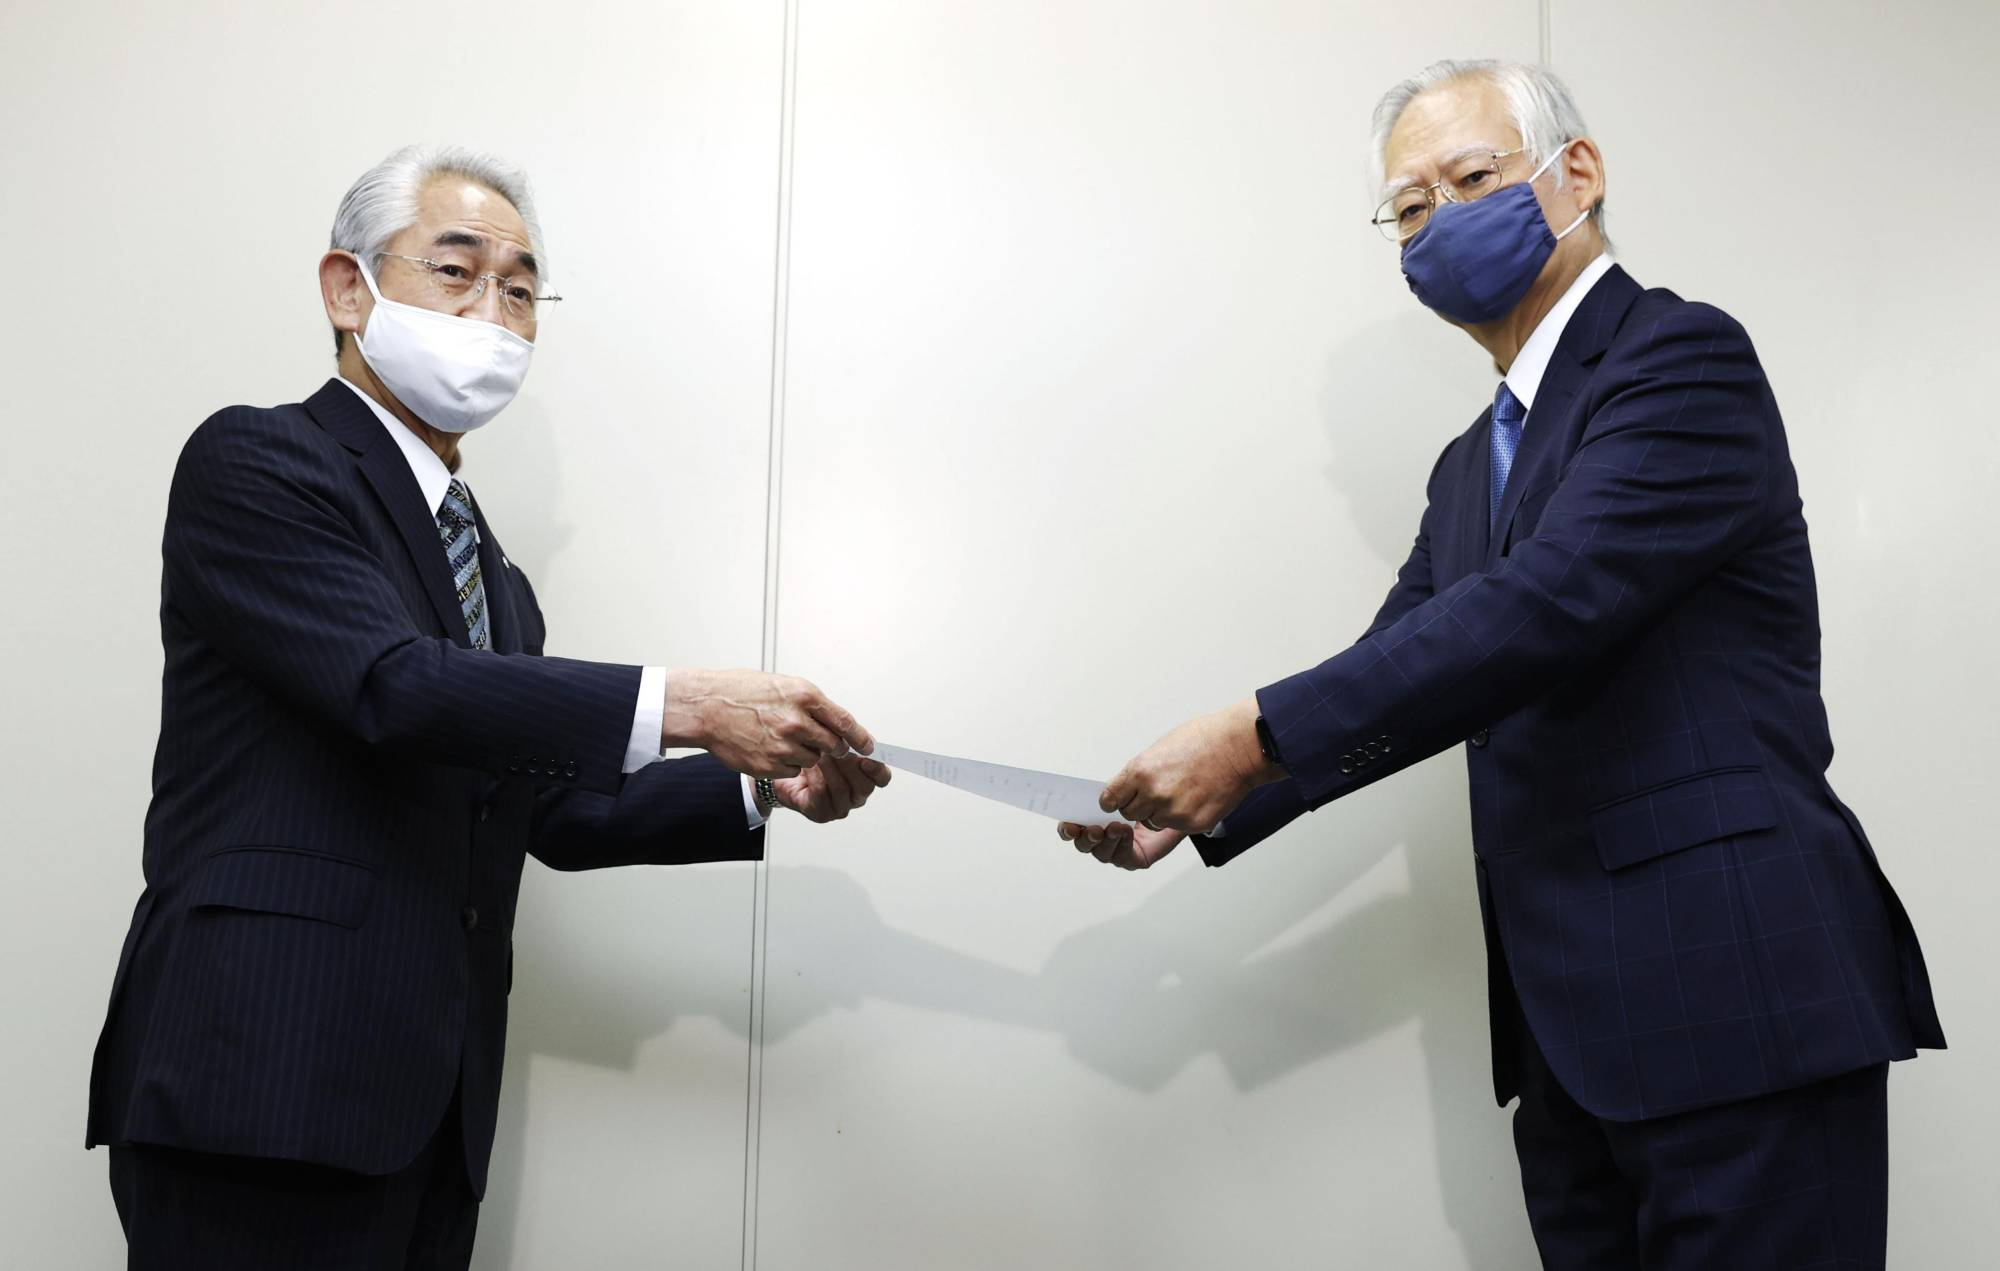 Haruo Kataoka (left), mayor of Suttsu in Hokkaido, submits the documents to apply for a nuclear waste disposal site survey to Shunsuke Kondo, head of the Nuclear Waste Management Organization, in Tokyo on Friday. | KYODO